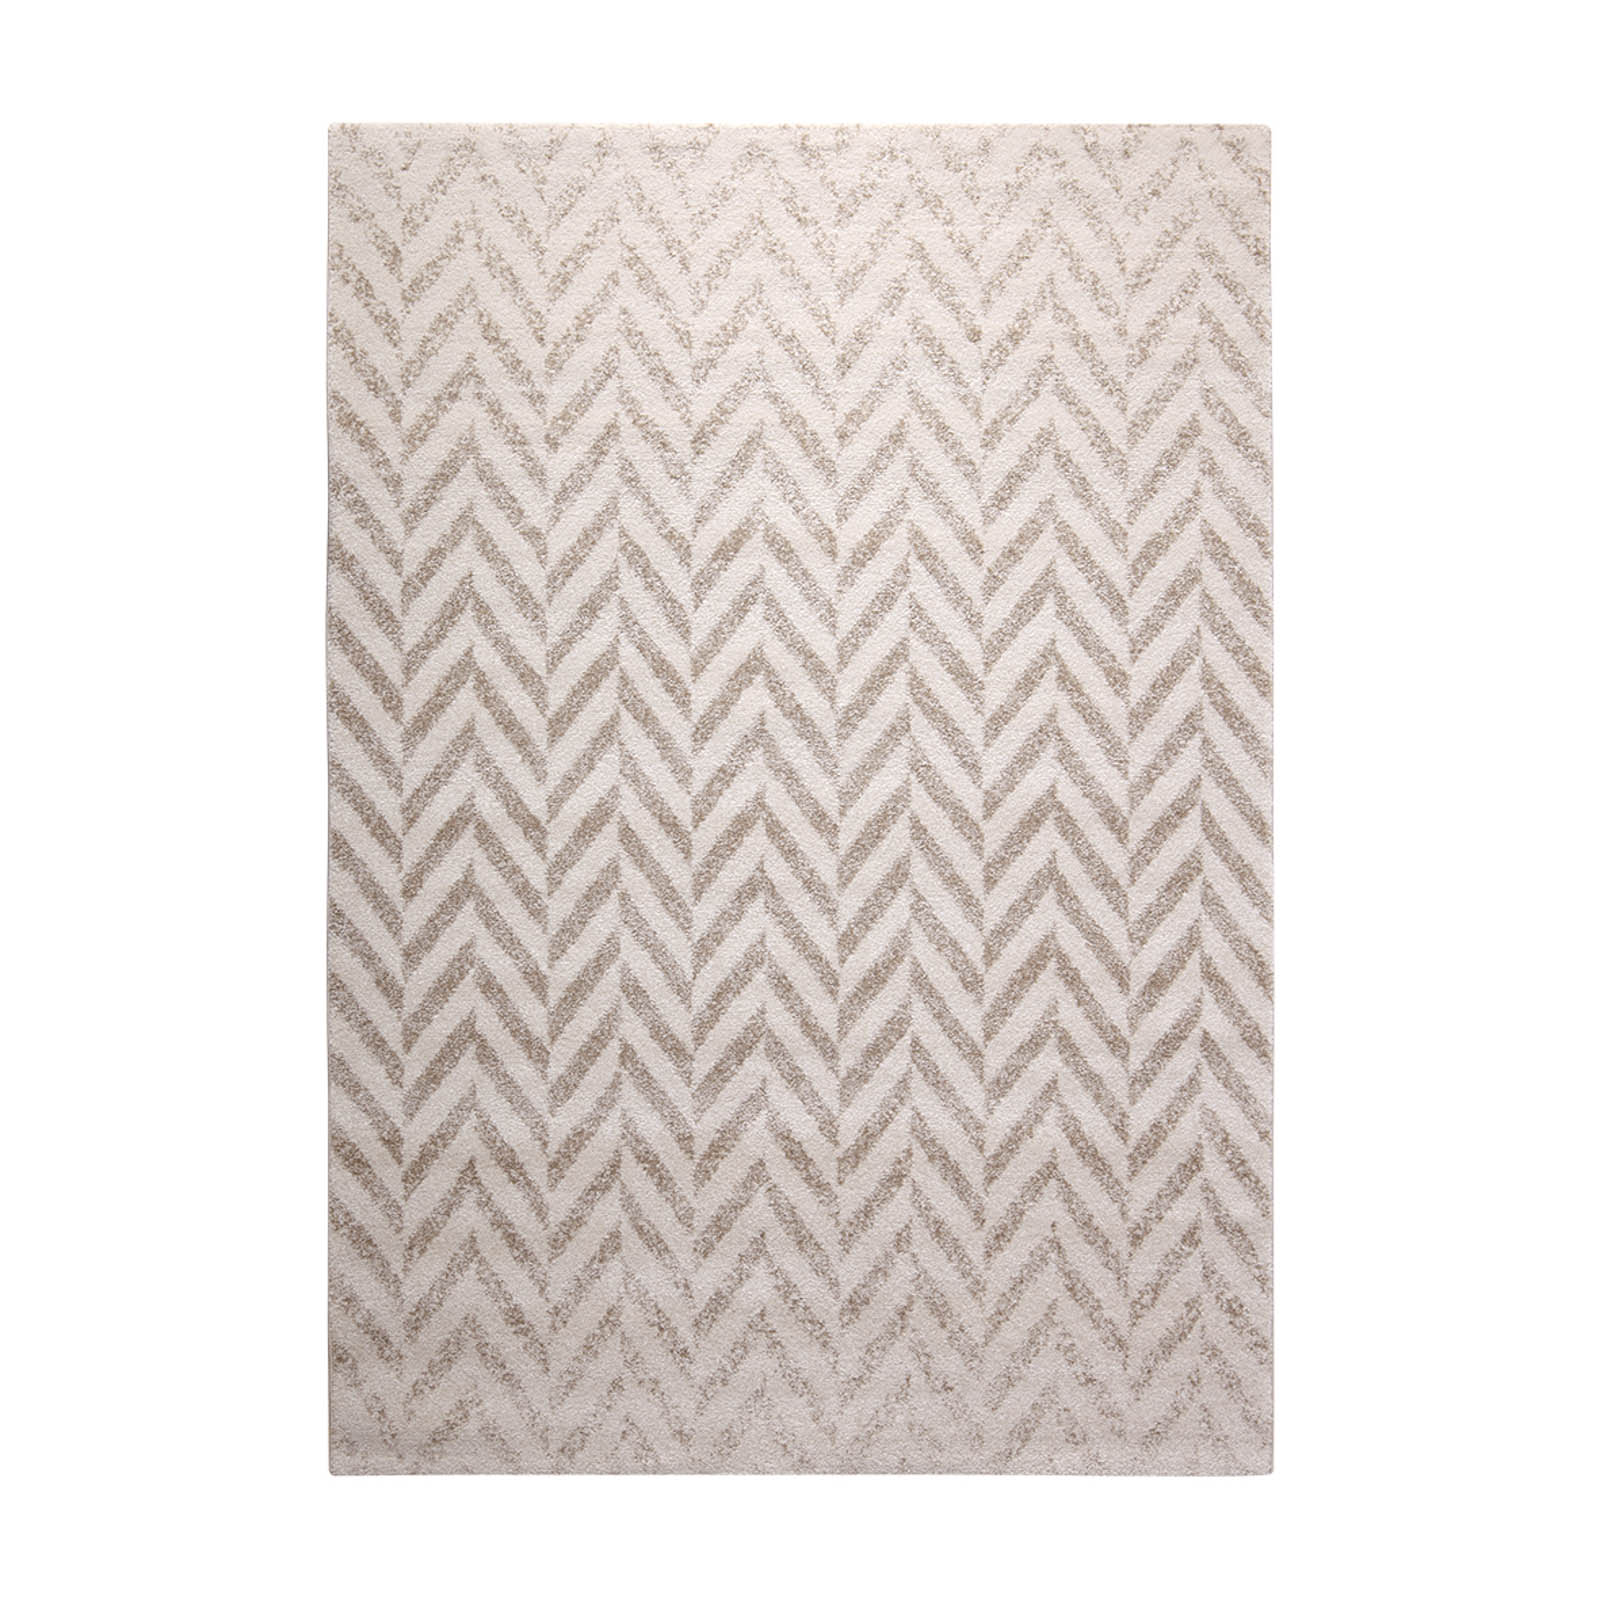 Highway Rugs 2081 670 by Esprit in Cream and Beige